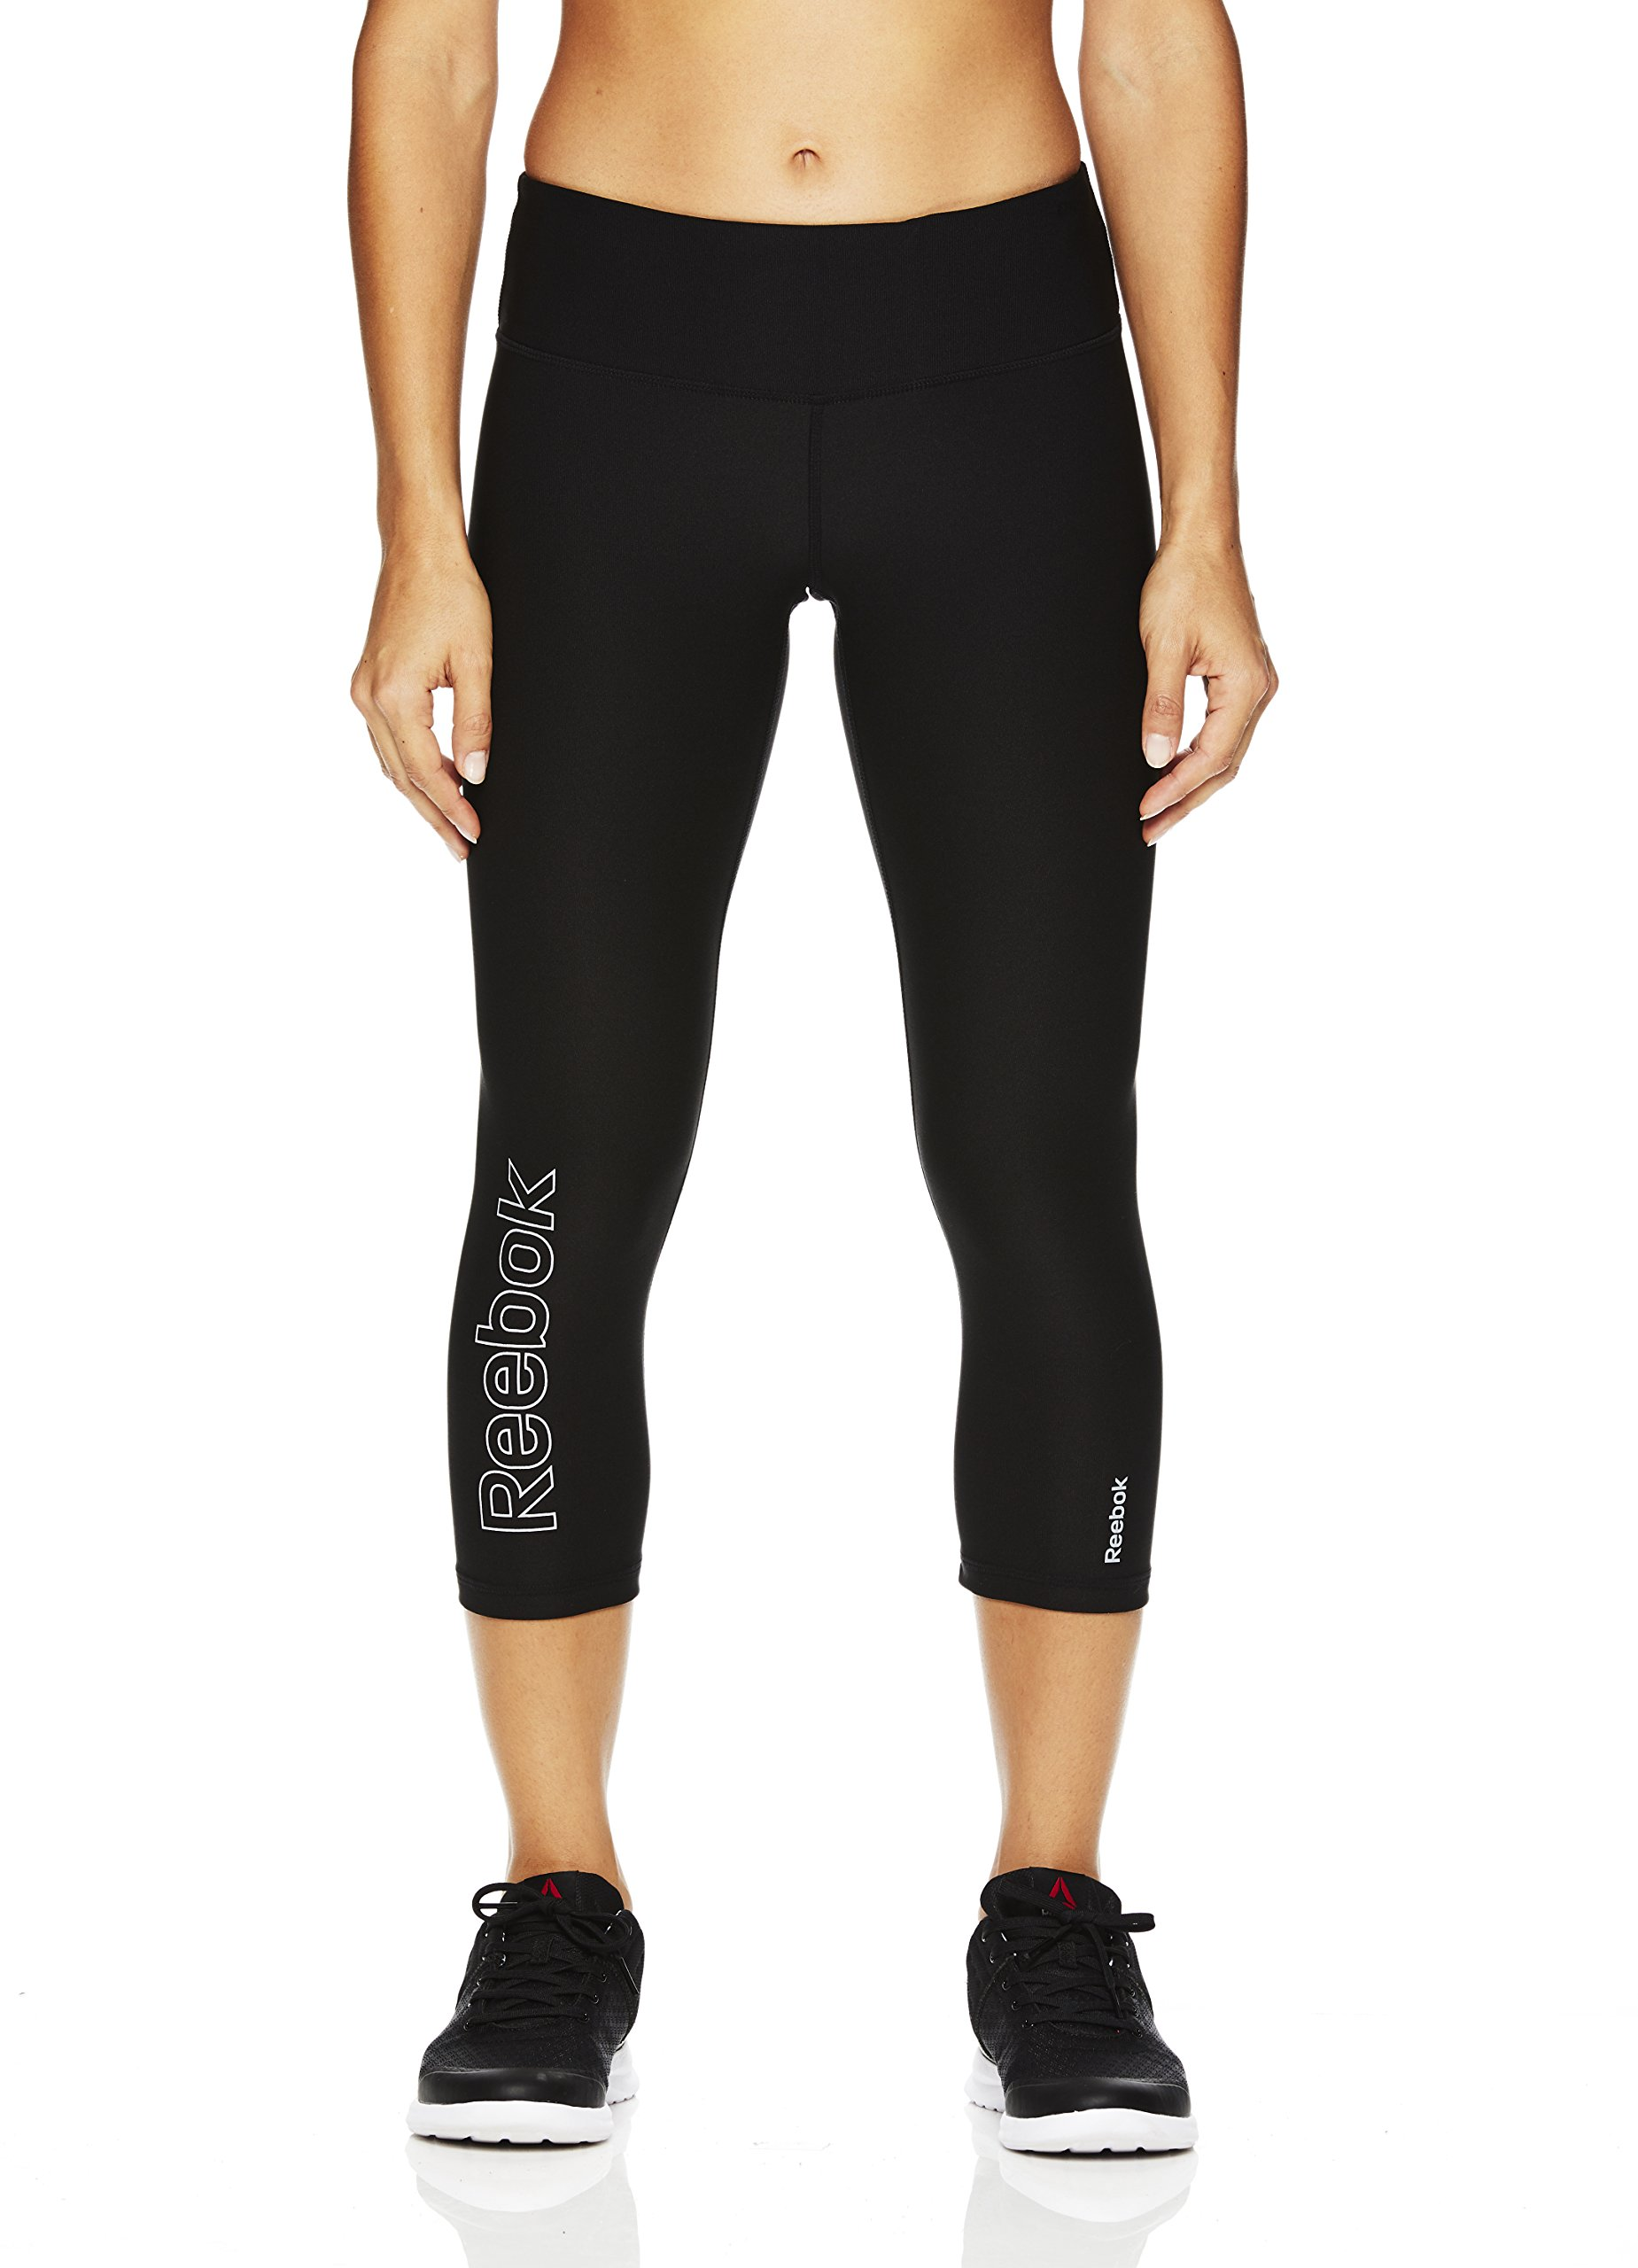 Galleon - Reebok Women s Printed Capri Leggings With Mid-Rise Waist  Performance Compression Tights - Midnight Black 7a3b75aed